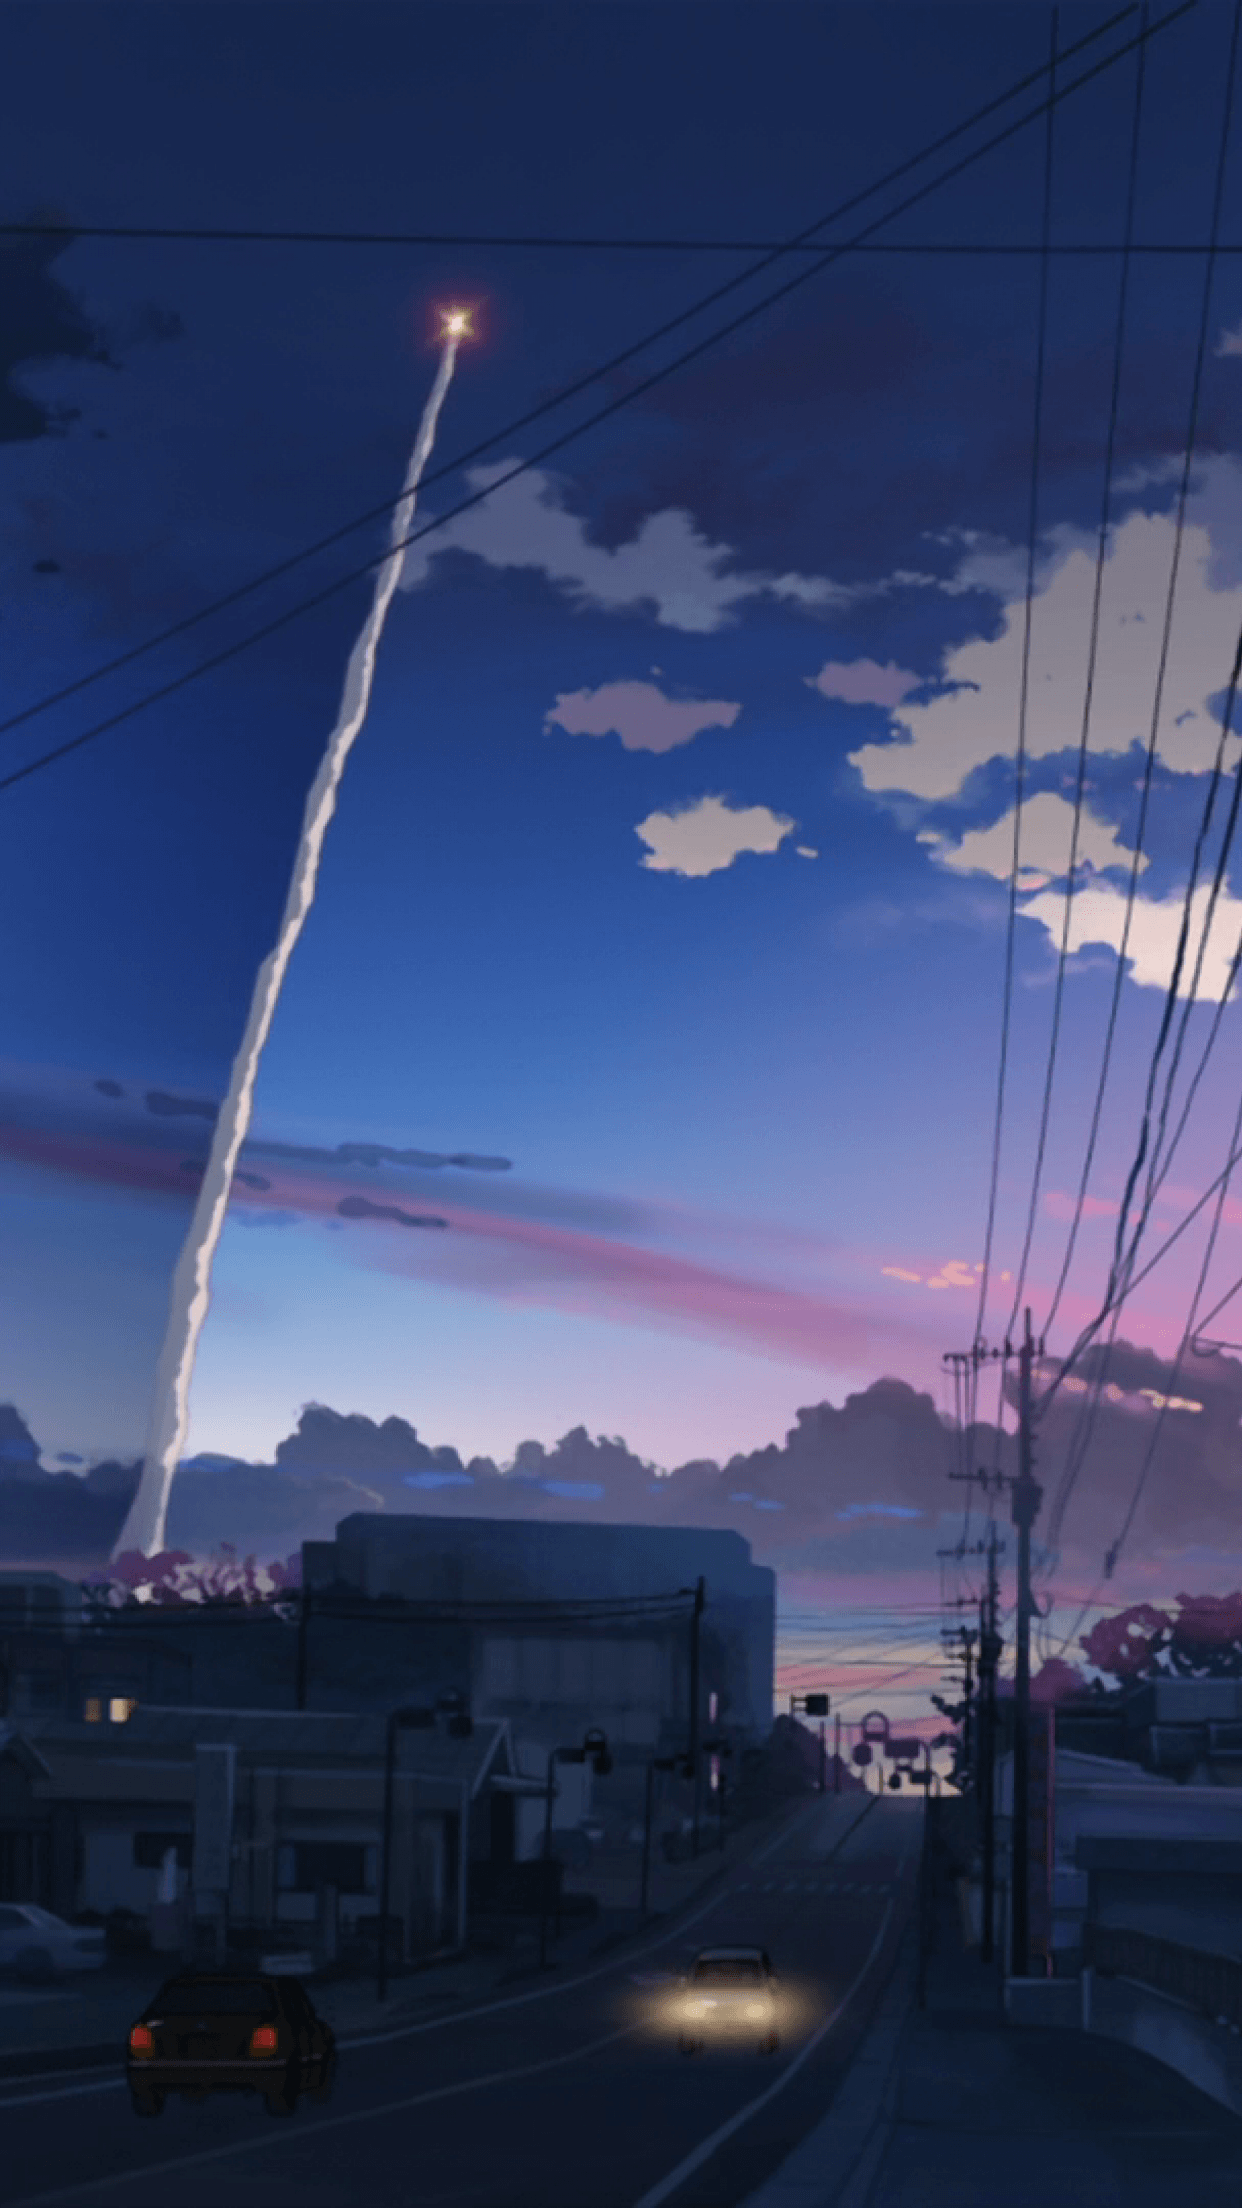 77 Lo-fi ideas | anime wallpaper, aesthetic wallpapers, vaporwave...